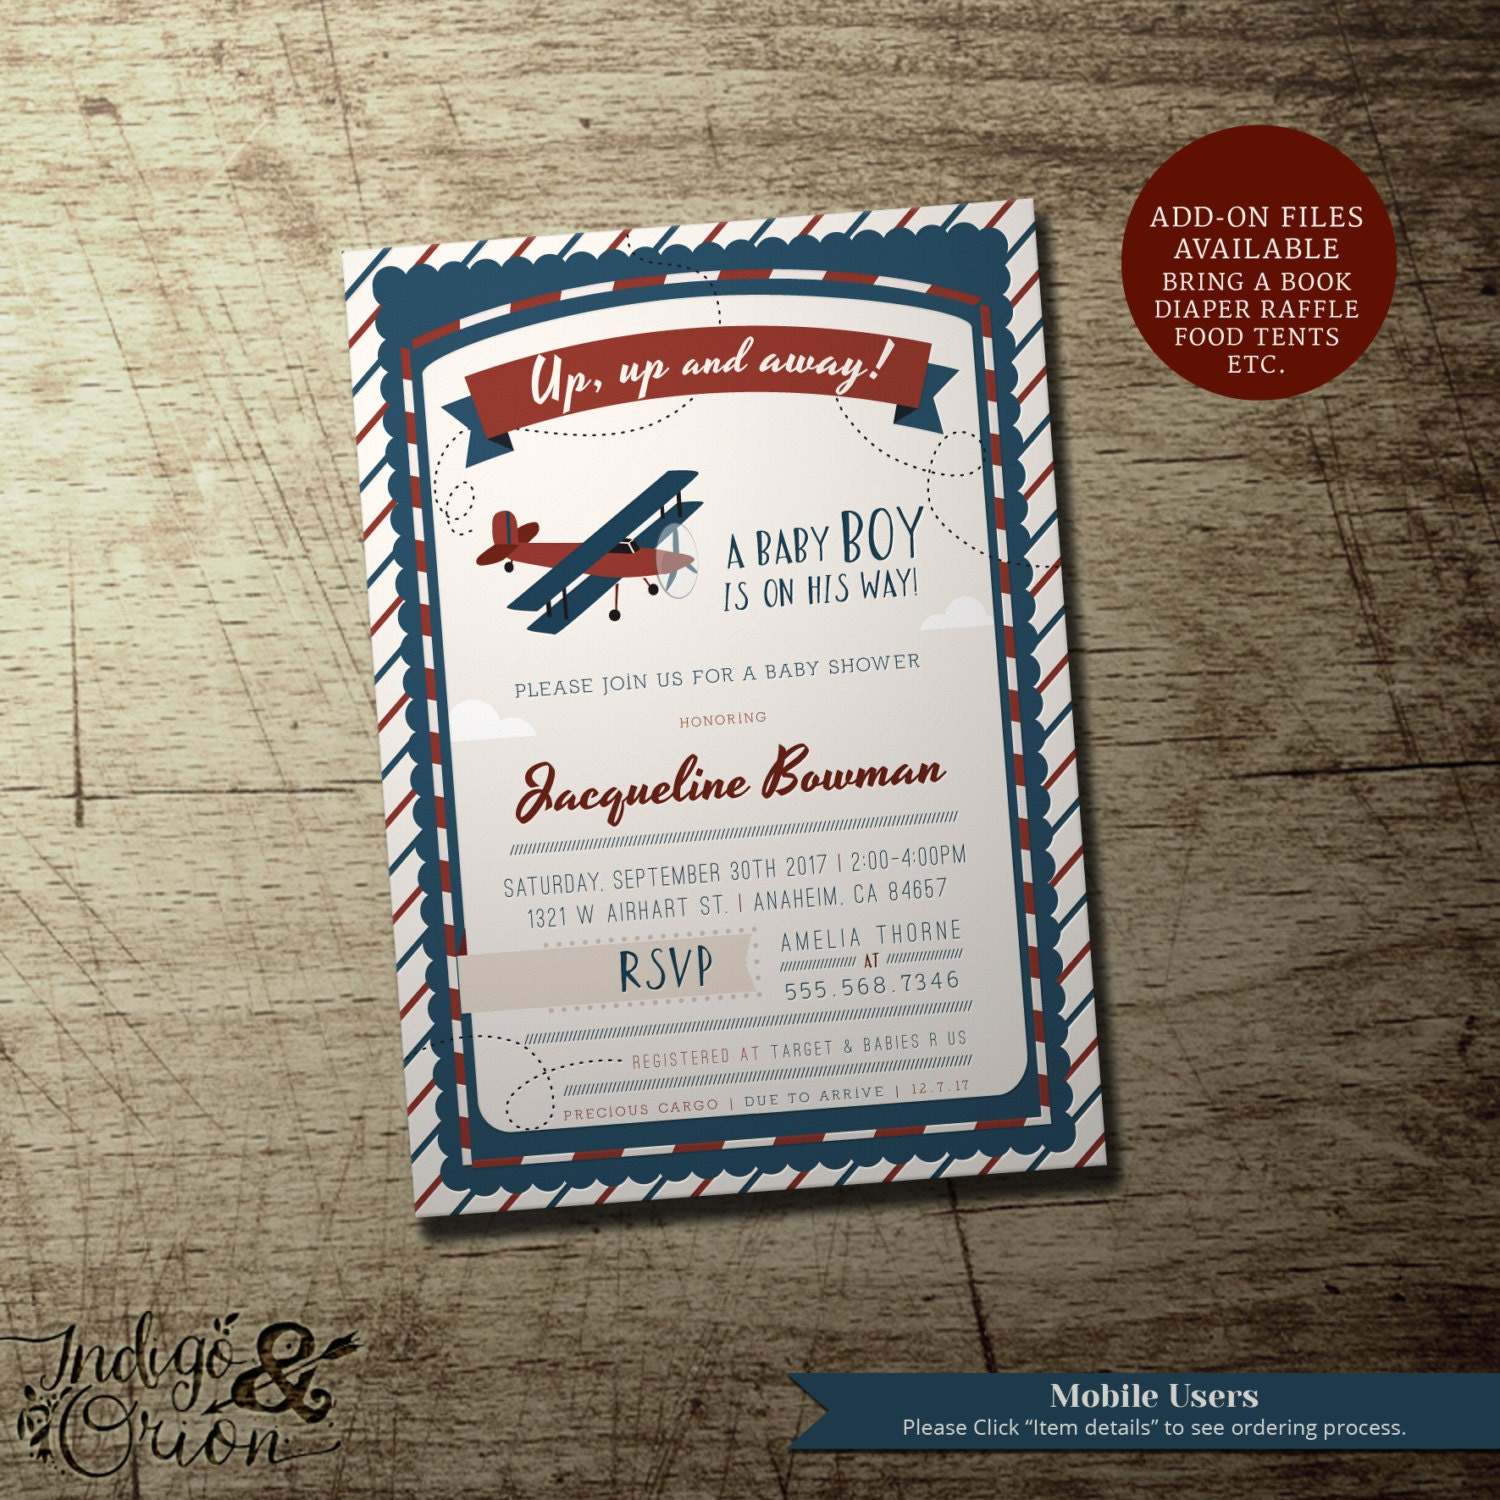 Airplane Birthday Party Get Ready For Takeoff: Vintage Airplane Baby Shower Invitation Up Up And Away